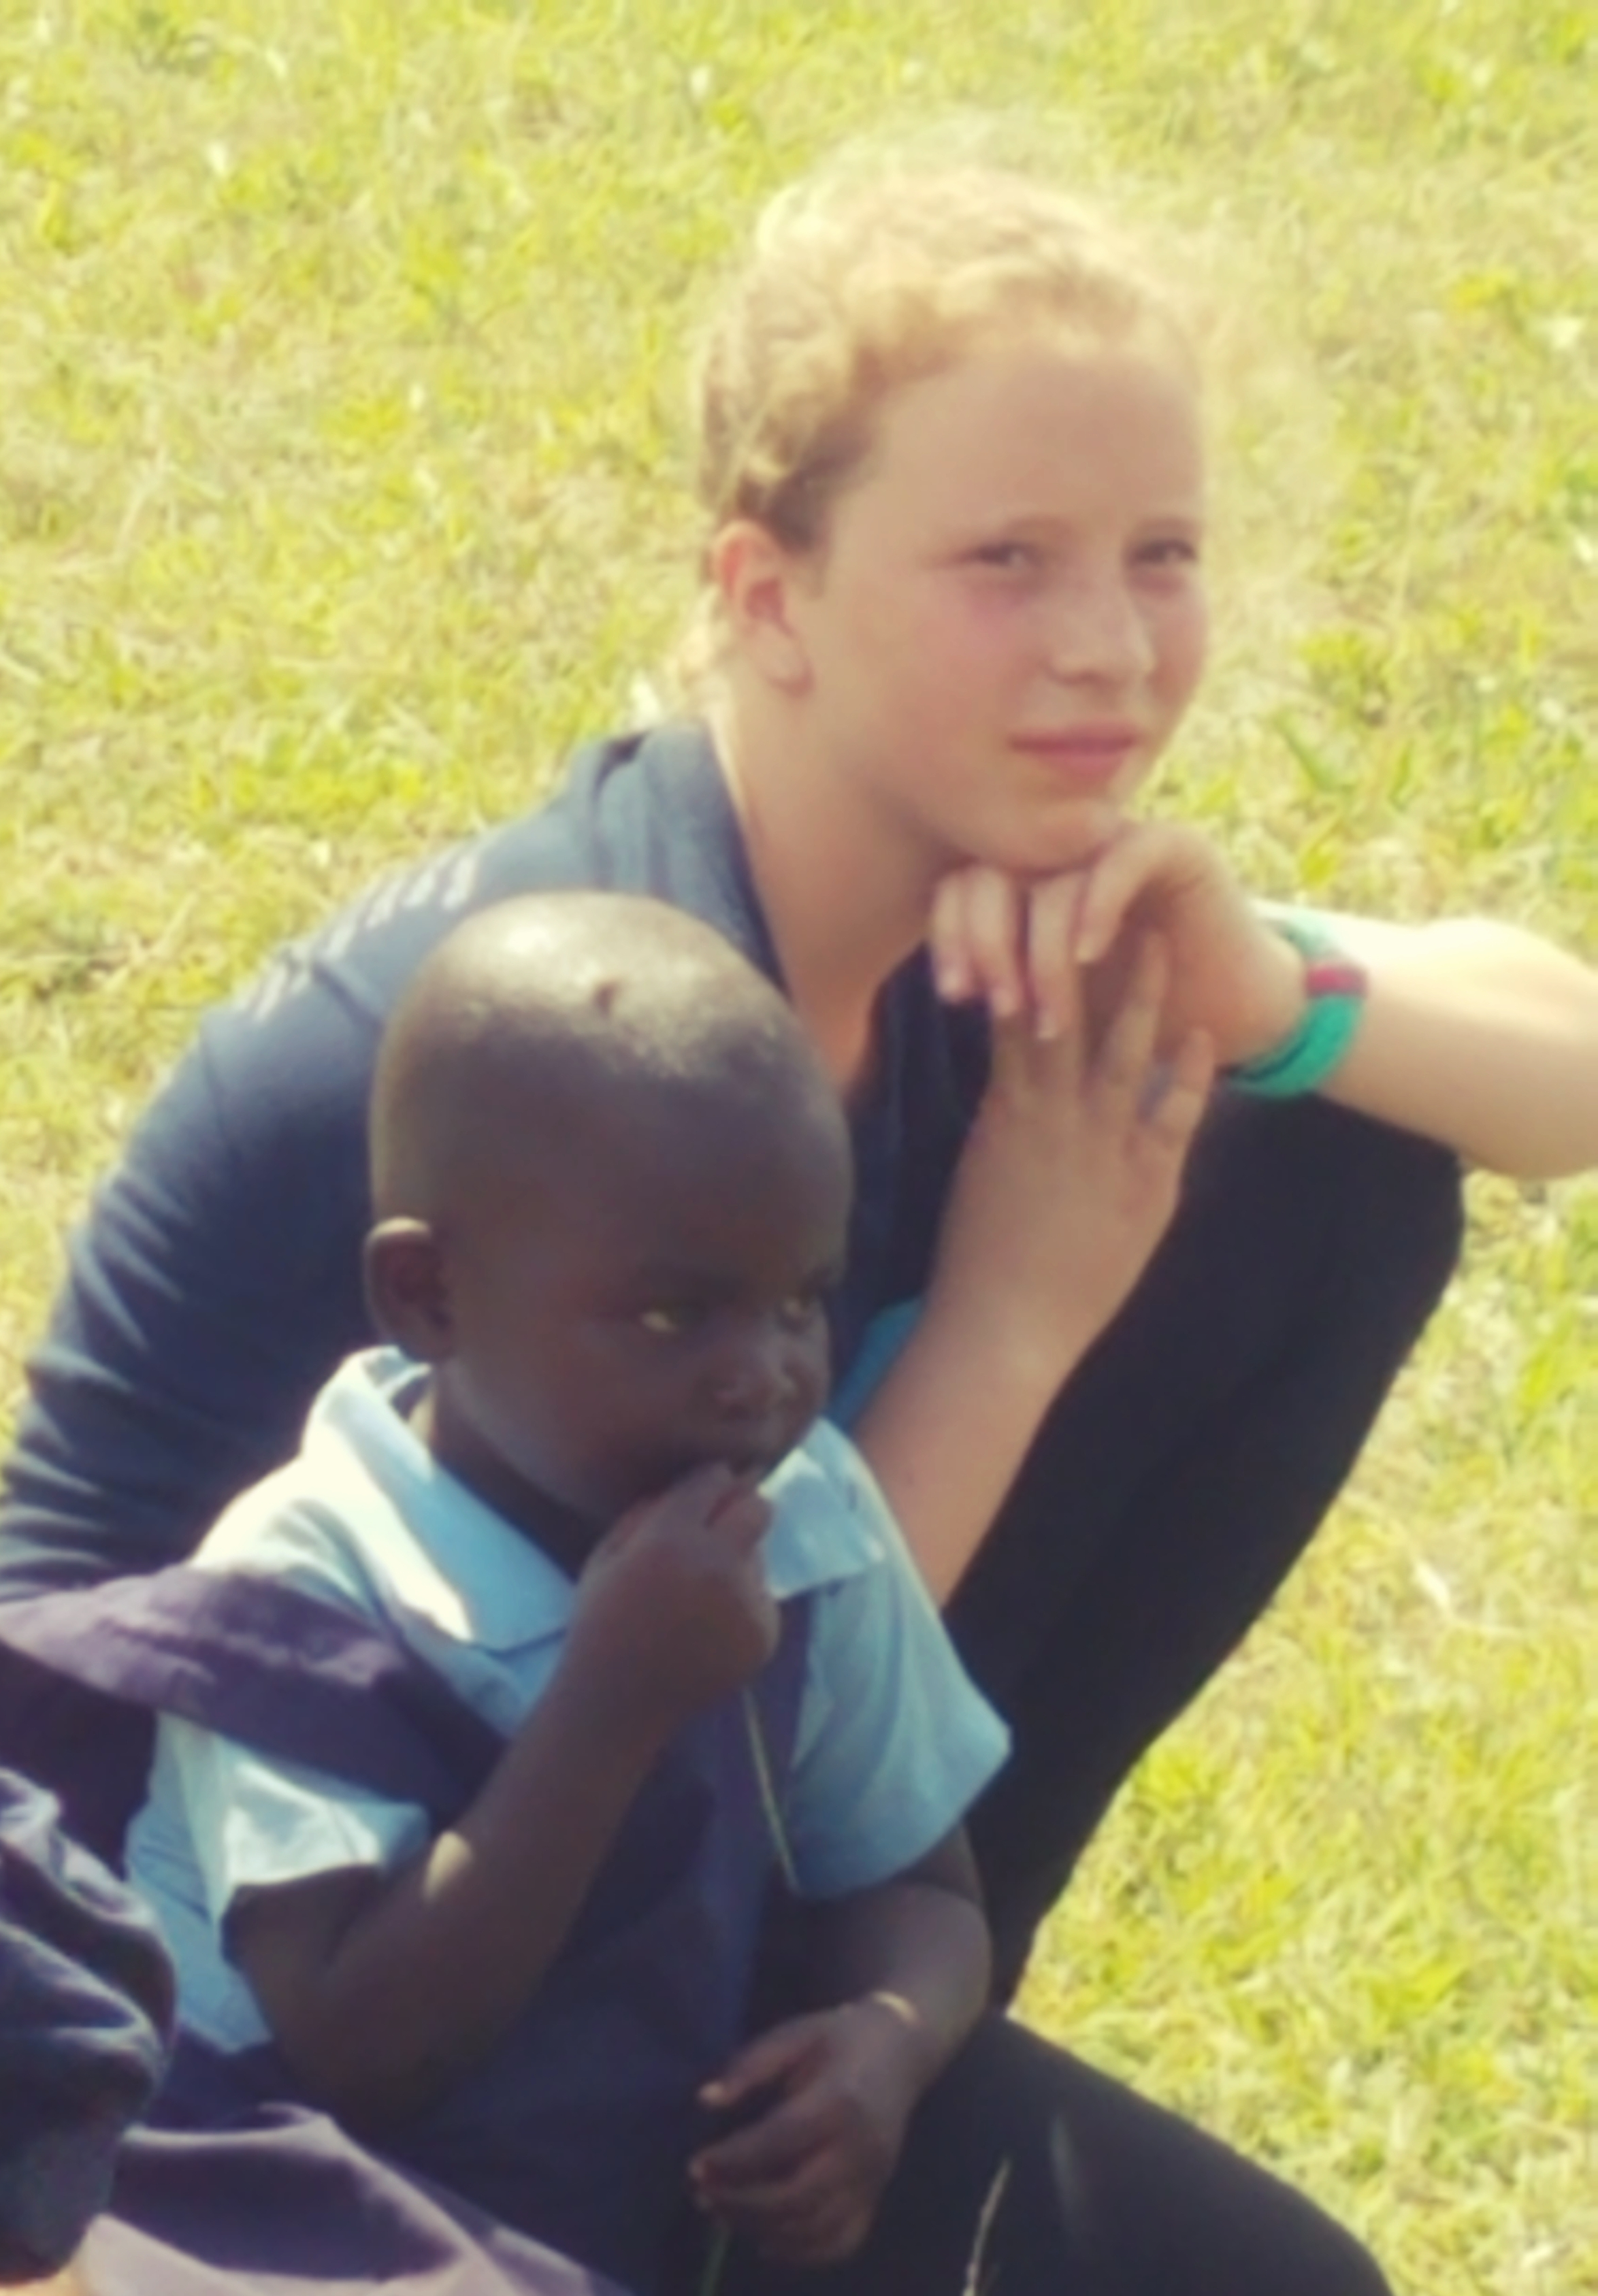 Will you be a Well-Wisher with me? - From Sierra: My Passion Project for 7th grade (along with my family's 2019 goal) is to bring clean, accessible water to Mikei village in southwest Kenya. A water well can benefit so many people there, especially the women. So I have researched how to raise money and help others raise money to support this well that will completely change their lives. For example, at my middle school I am doing a lollipop sale to raise $350 in support of 50 villagers so our CHMS Kids for Peace Club is listed on the Well Wisher plaque in Kenya. I am also sewing and selling 30 pillowcases at $10/each. I can't wait to see the difference for kids like Ruthie when we go back to see the well in a couple years! Thank you for reading!